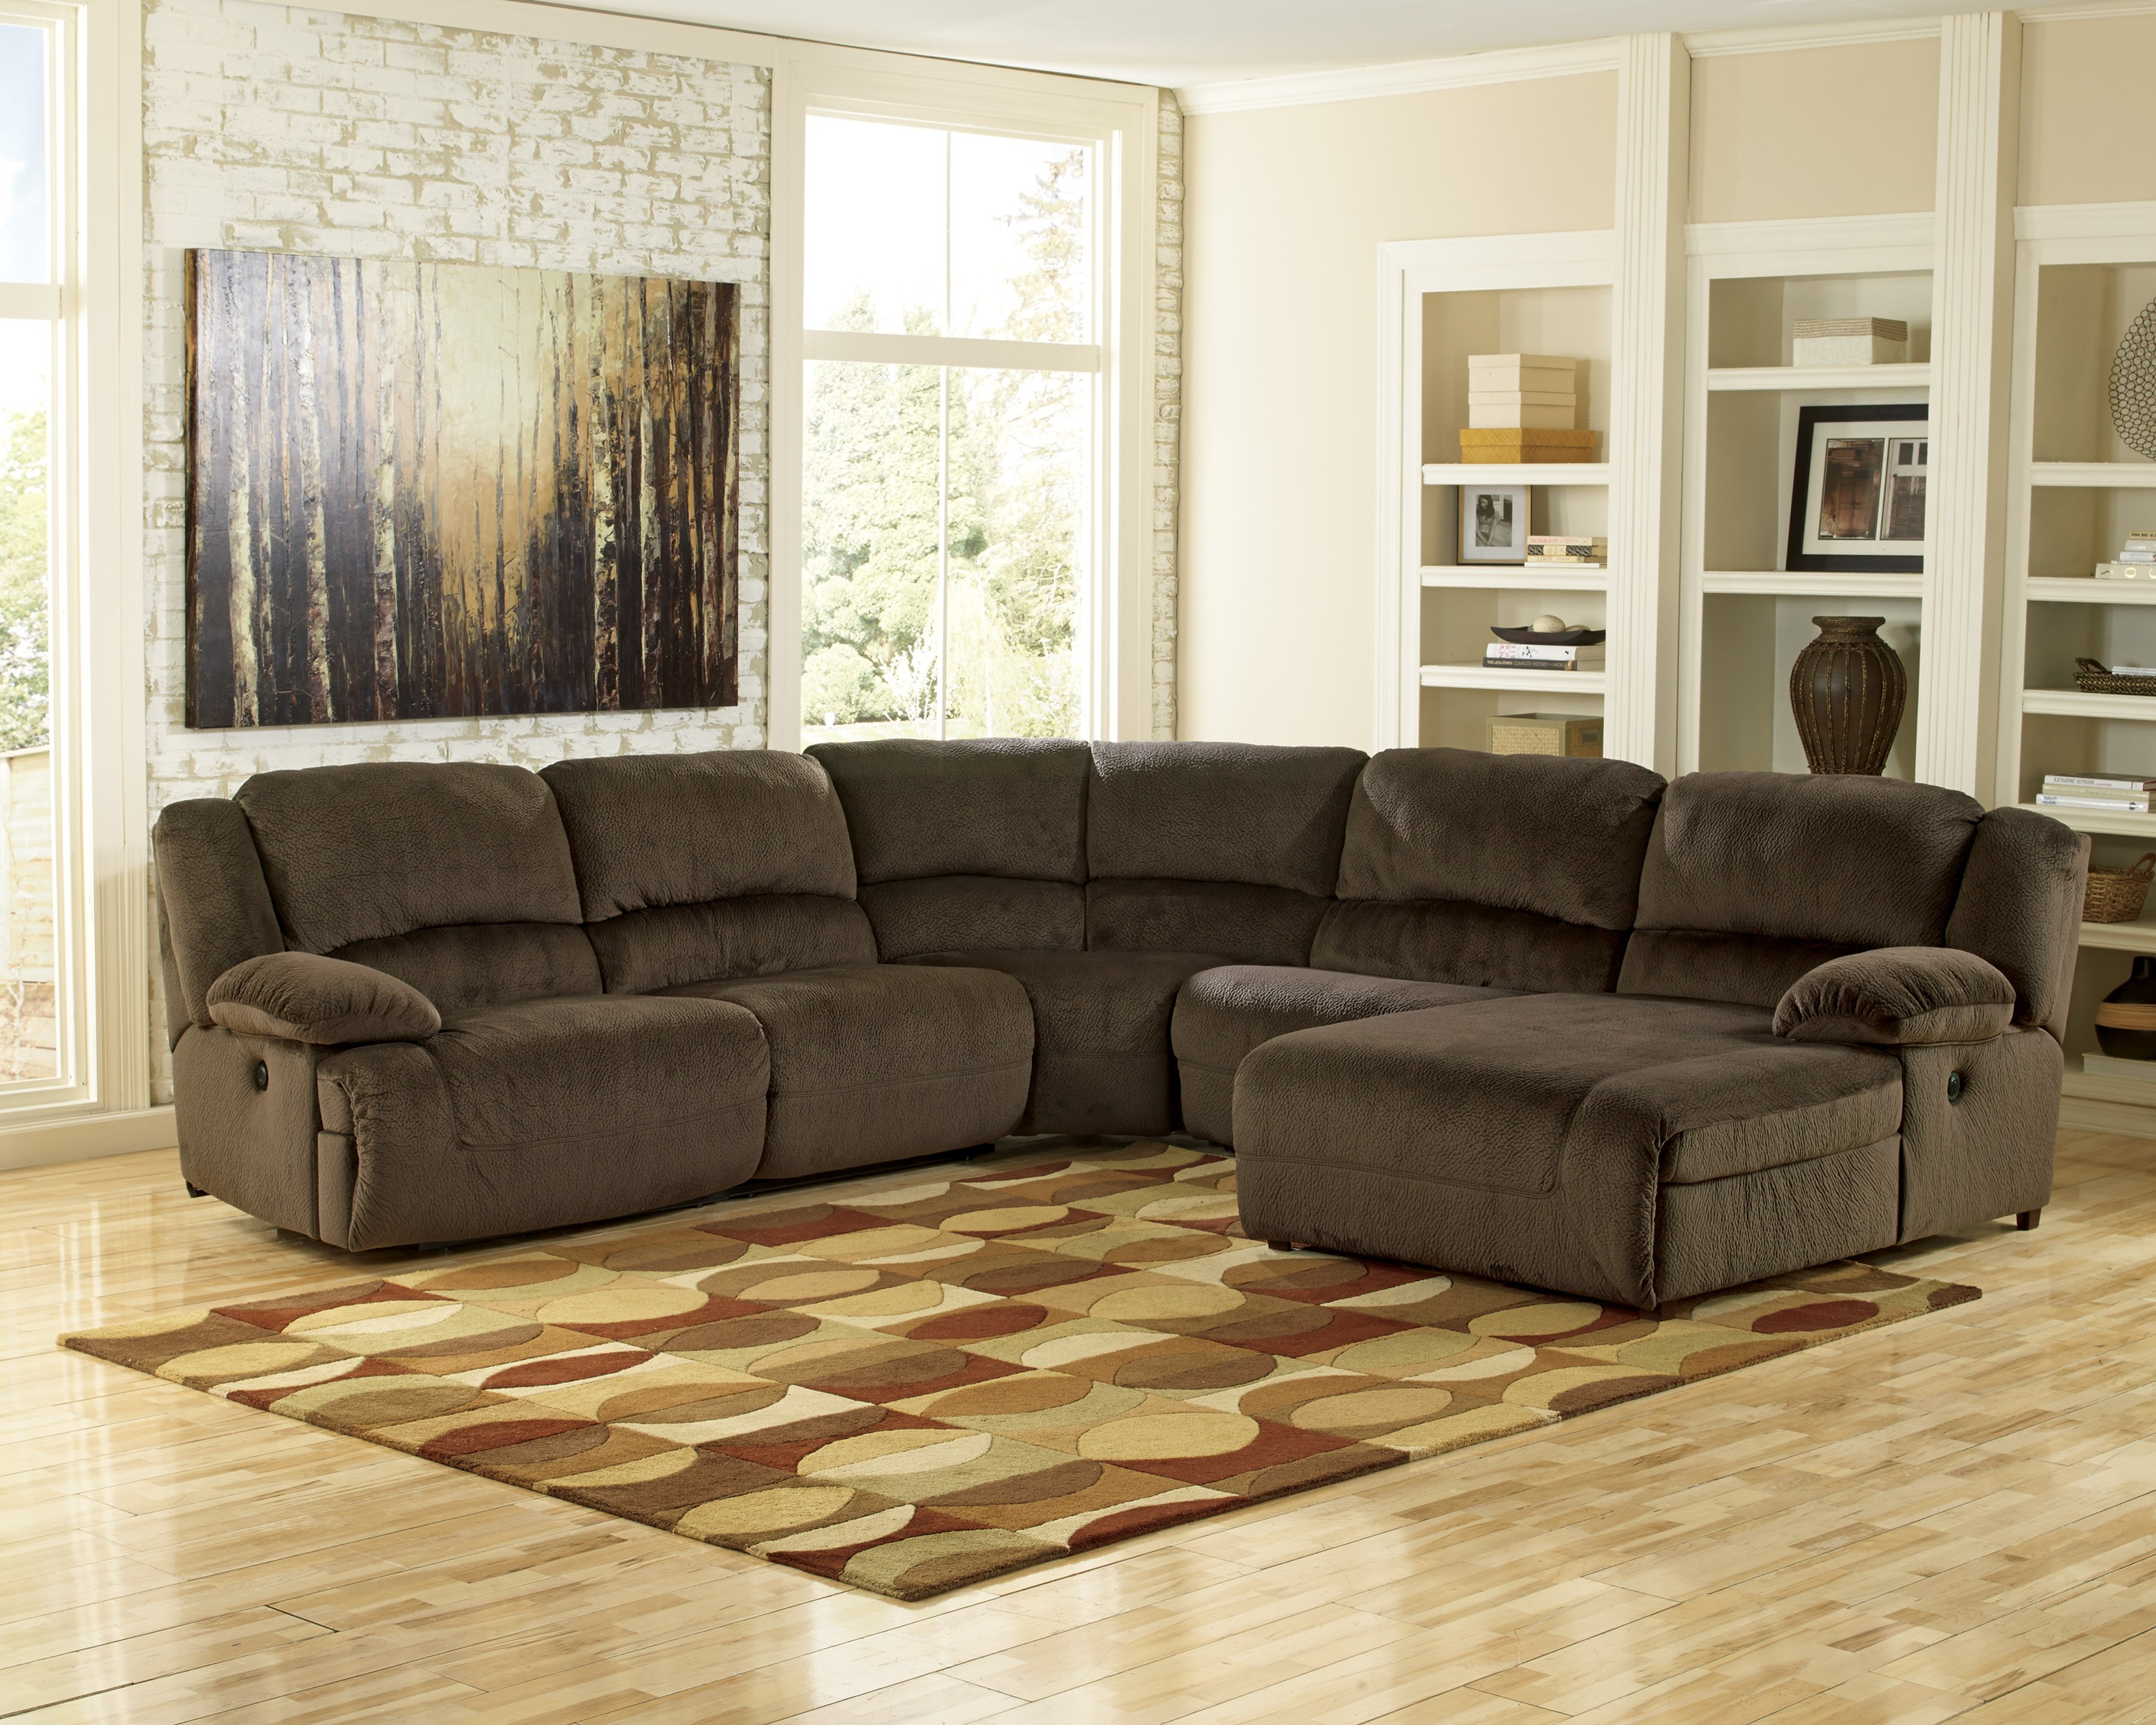 Signature Designashley Toletta Left Arm Facing Sectional Inside Most Up To Date Tess 2 Piece Power Reclining Sectionals With Laf Chaise (View 17 of 20)